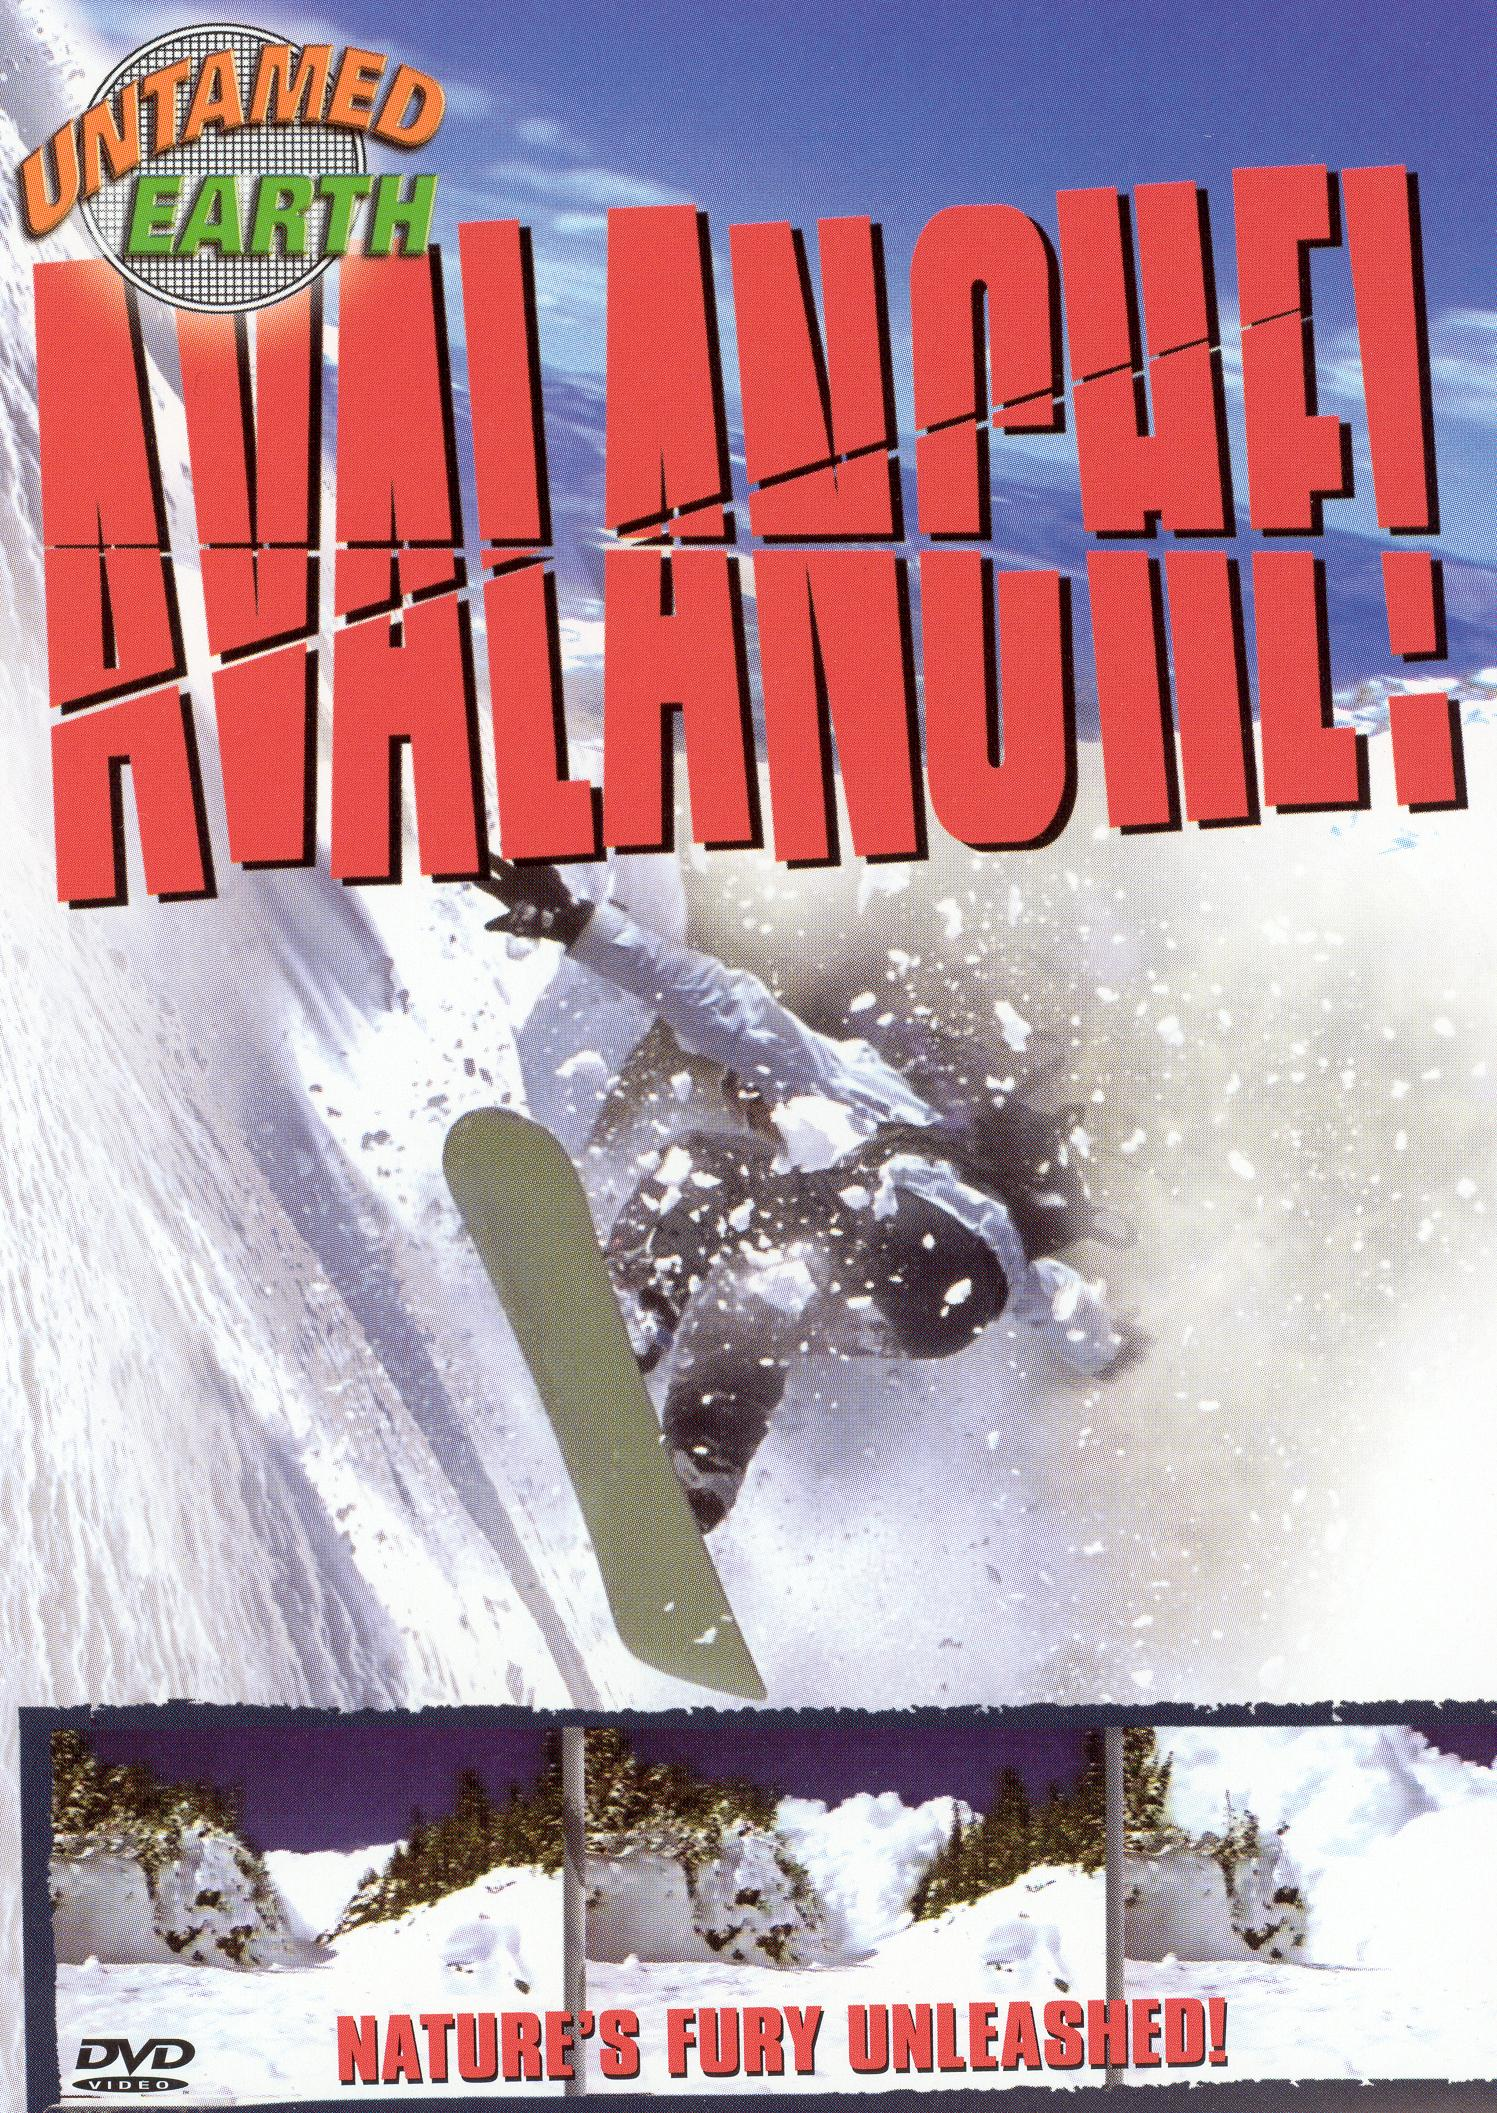 Untamed Earth: Avalanche!